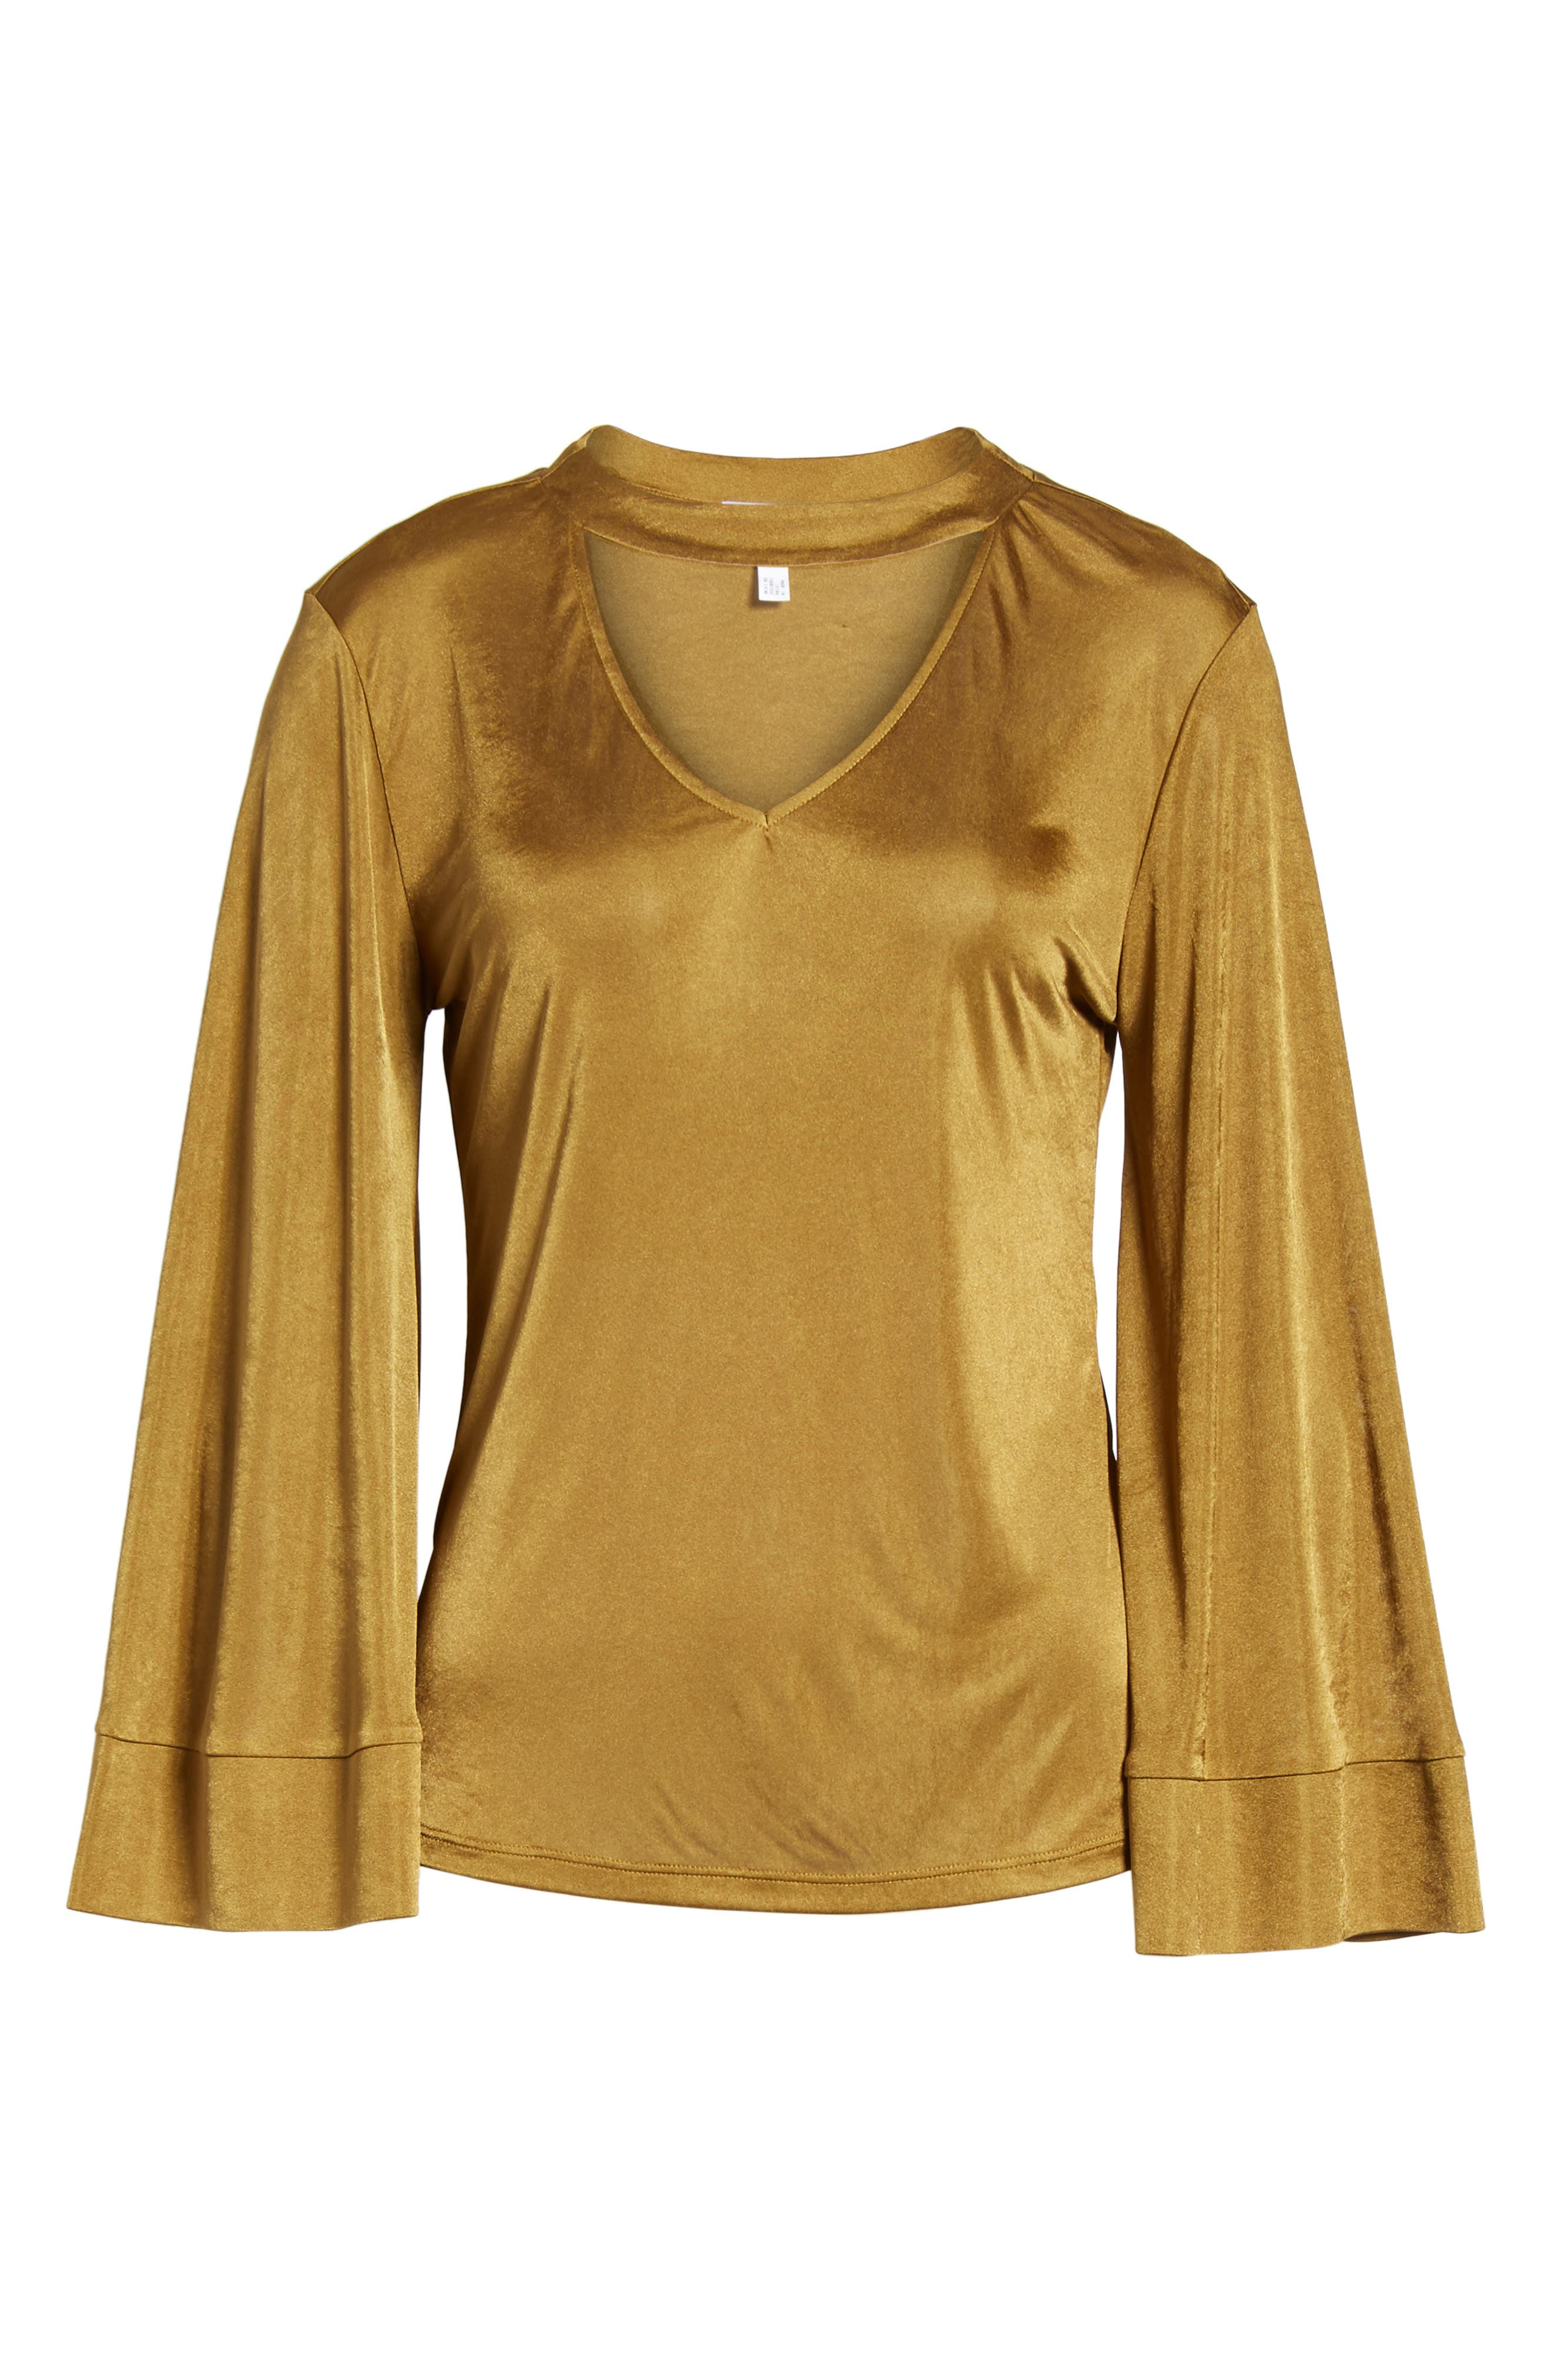 Choker Bell Sleeve Top,                             Alternate thumbnail 6, color,                             Olive Palm